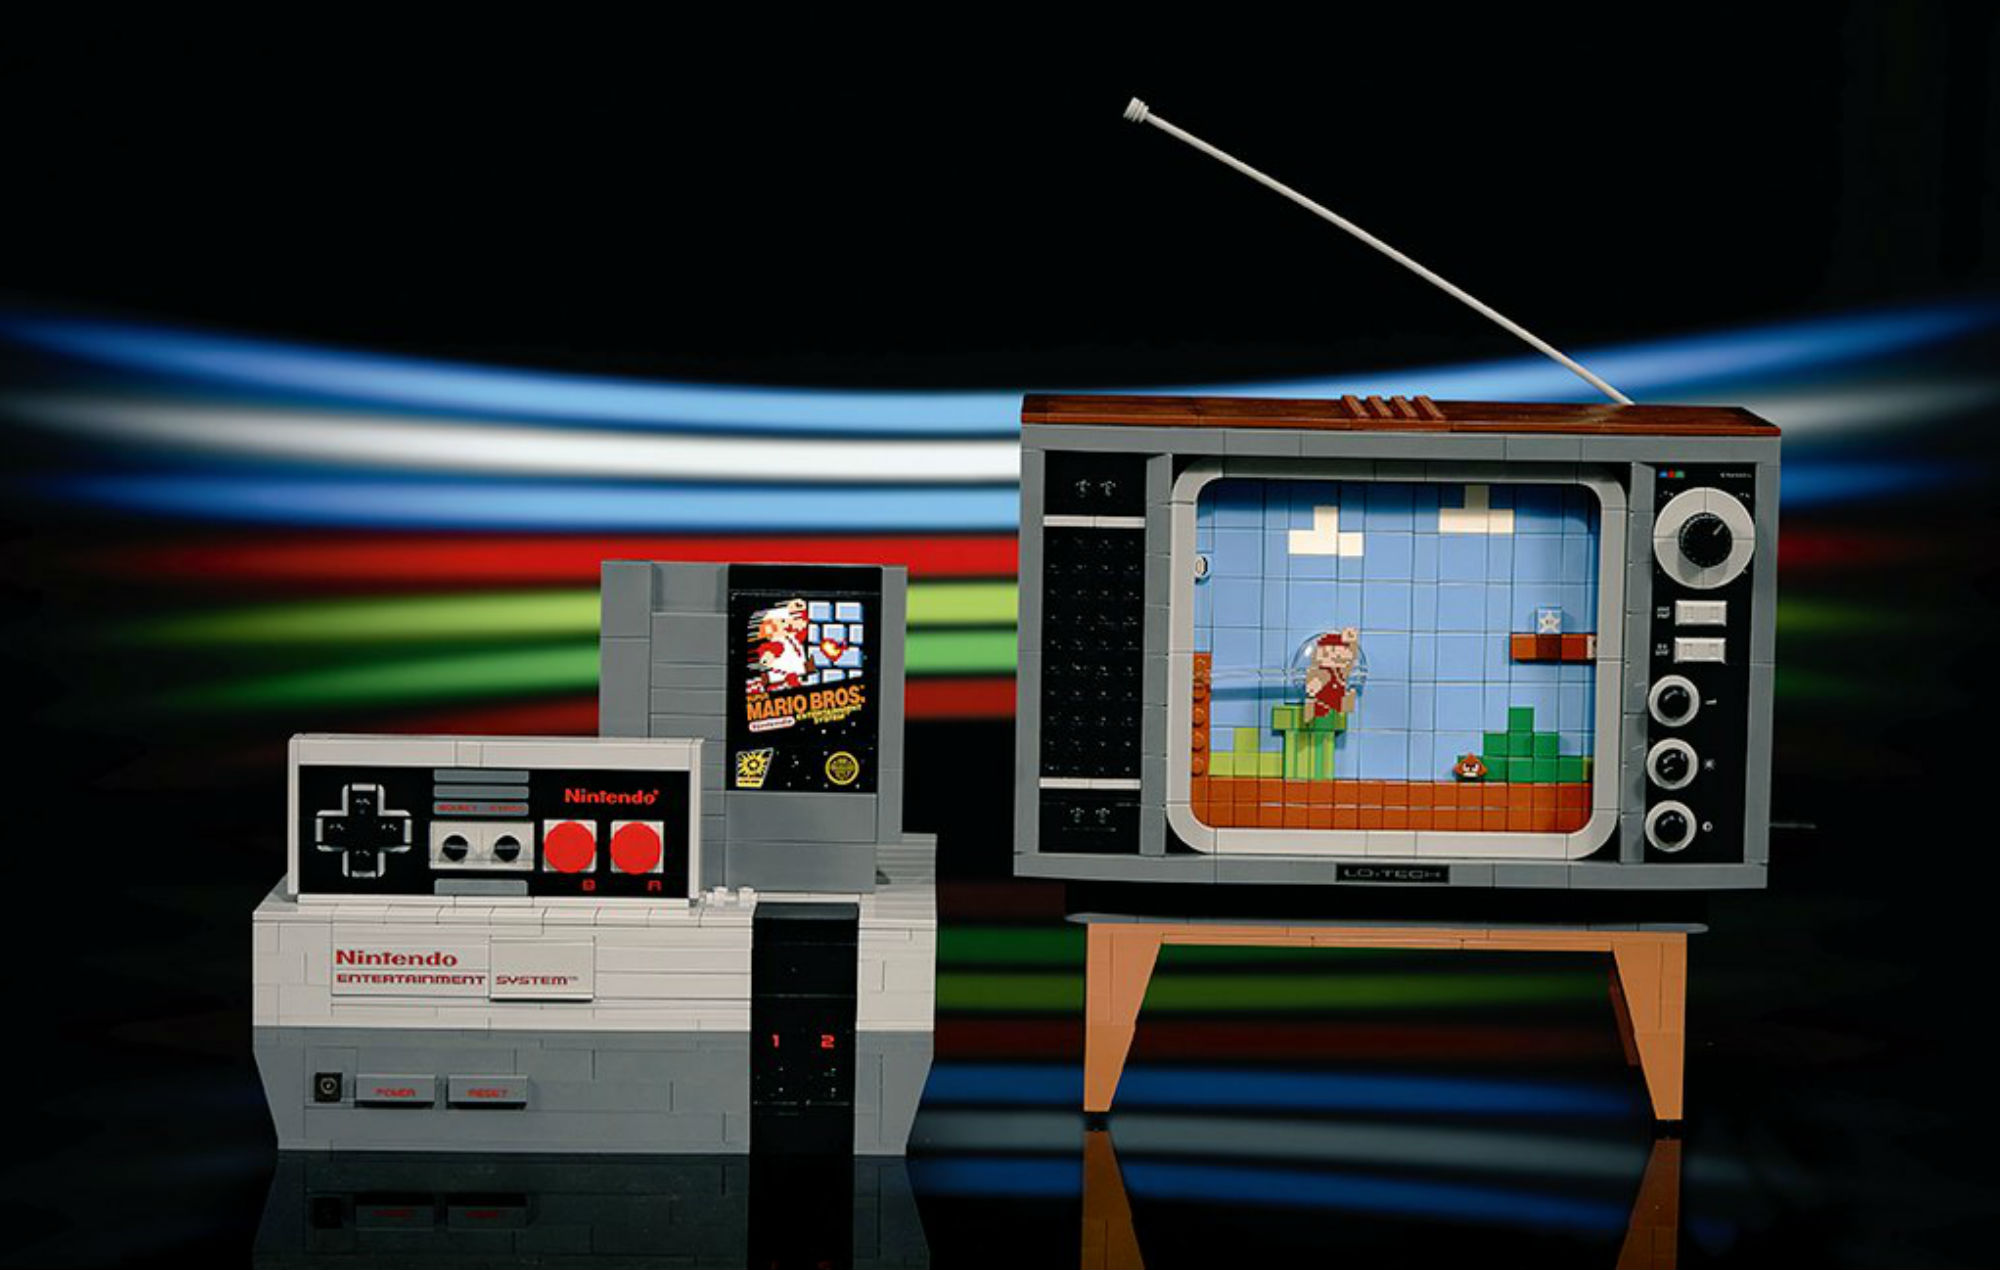 Check out a timelapse build for the LEGO NES